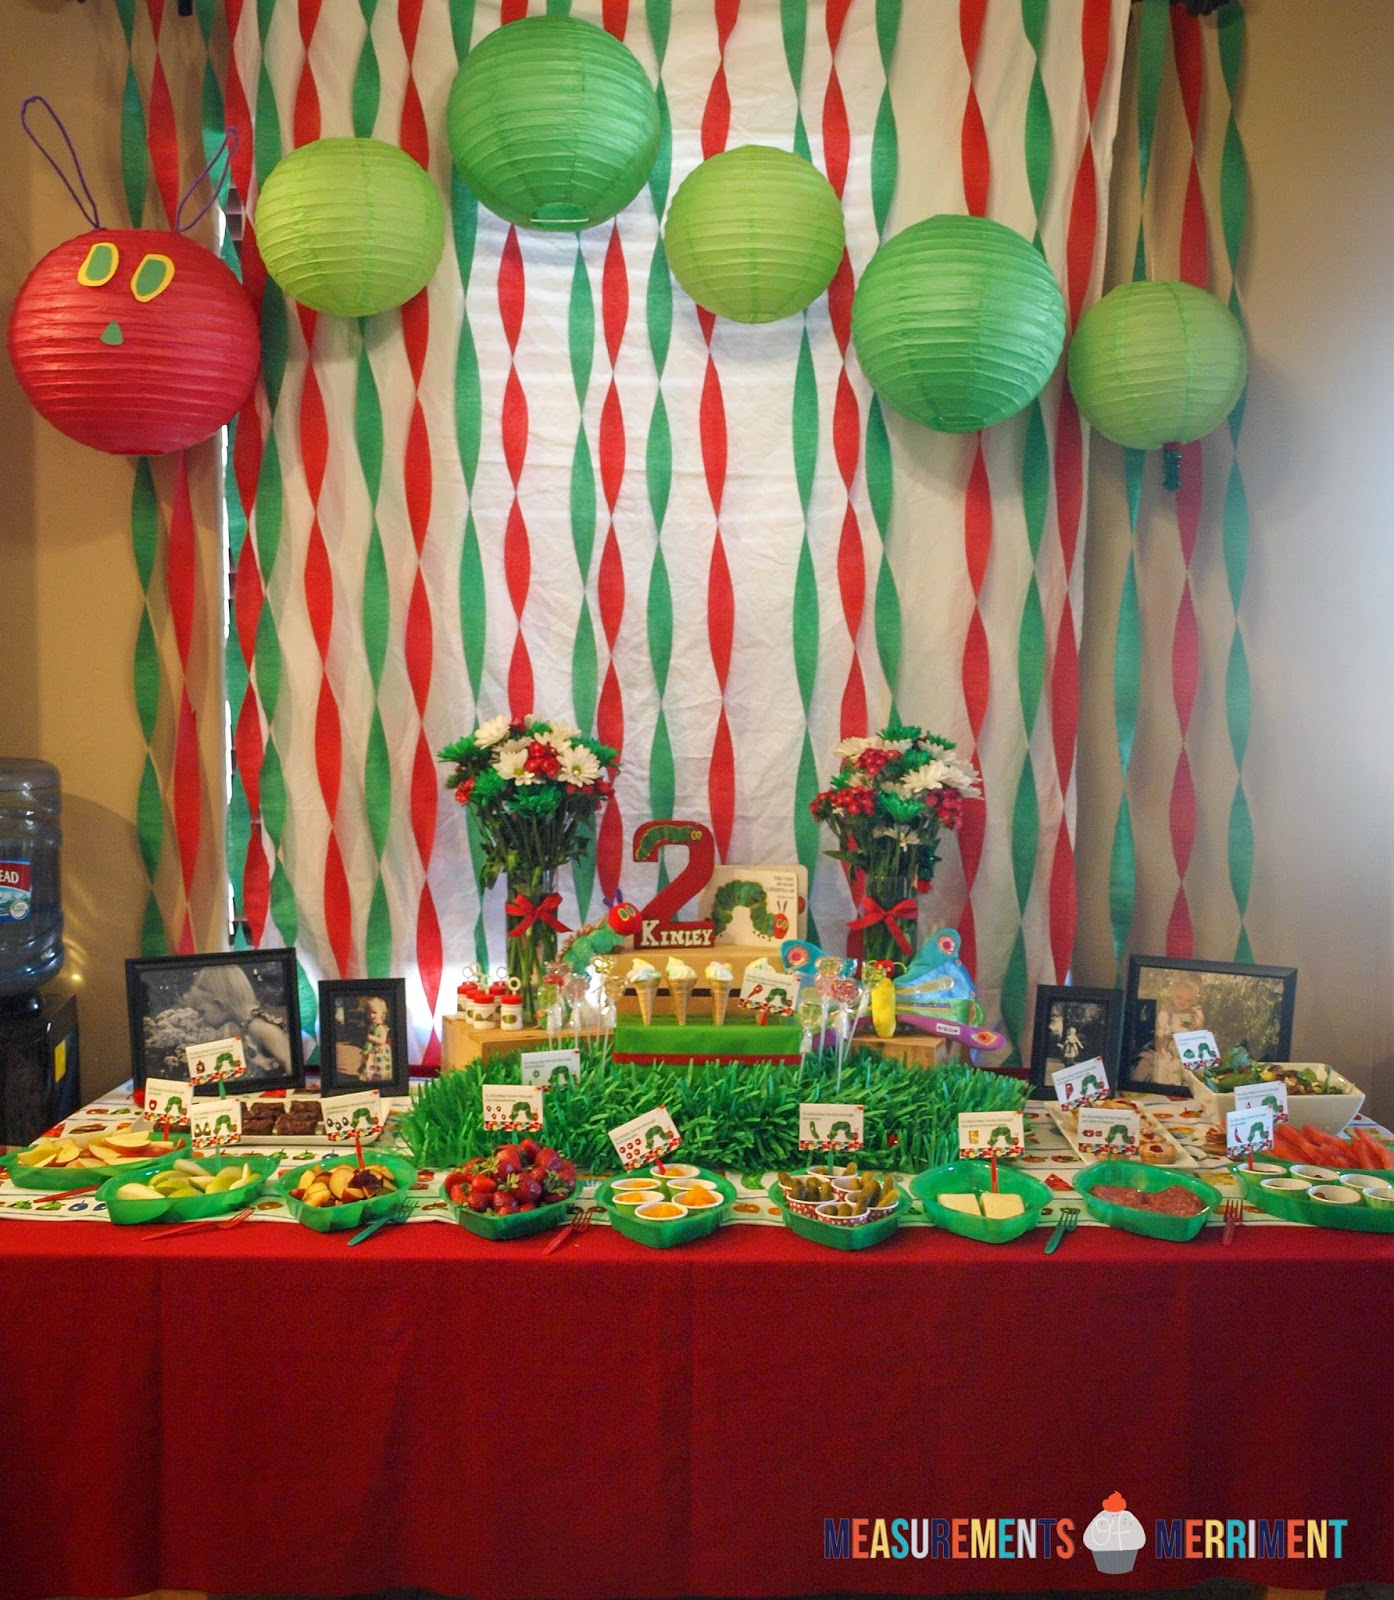 Measurements of Merriment: A Very Hungry Caterpillar Birthday